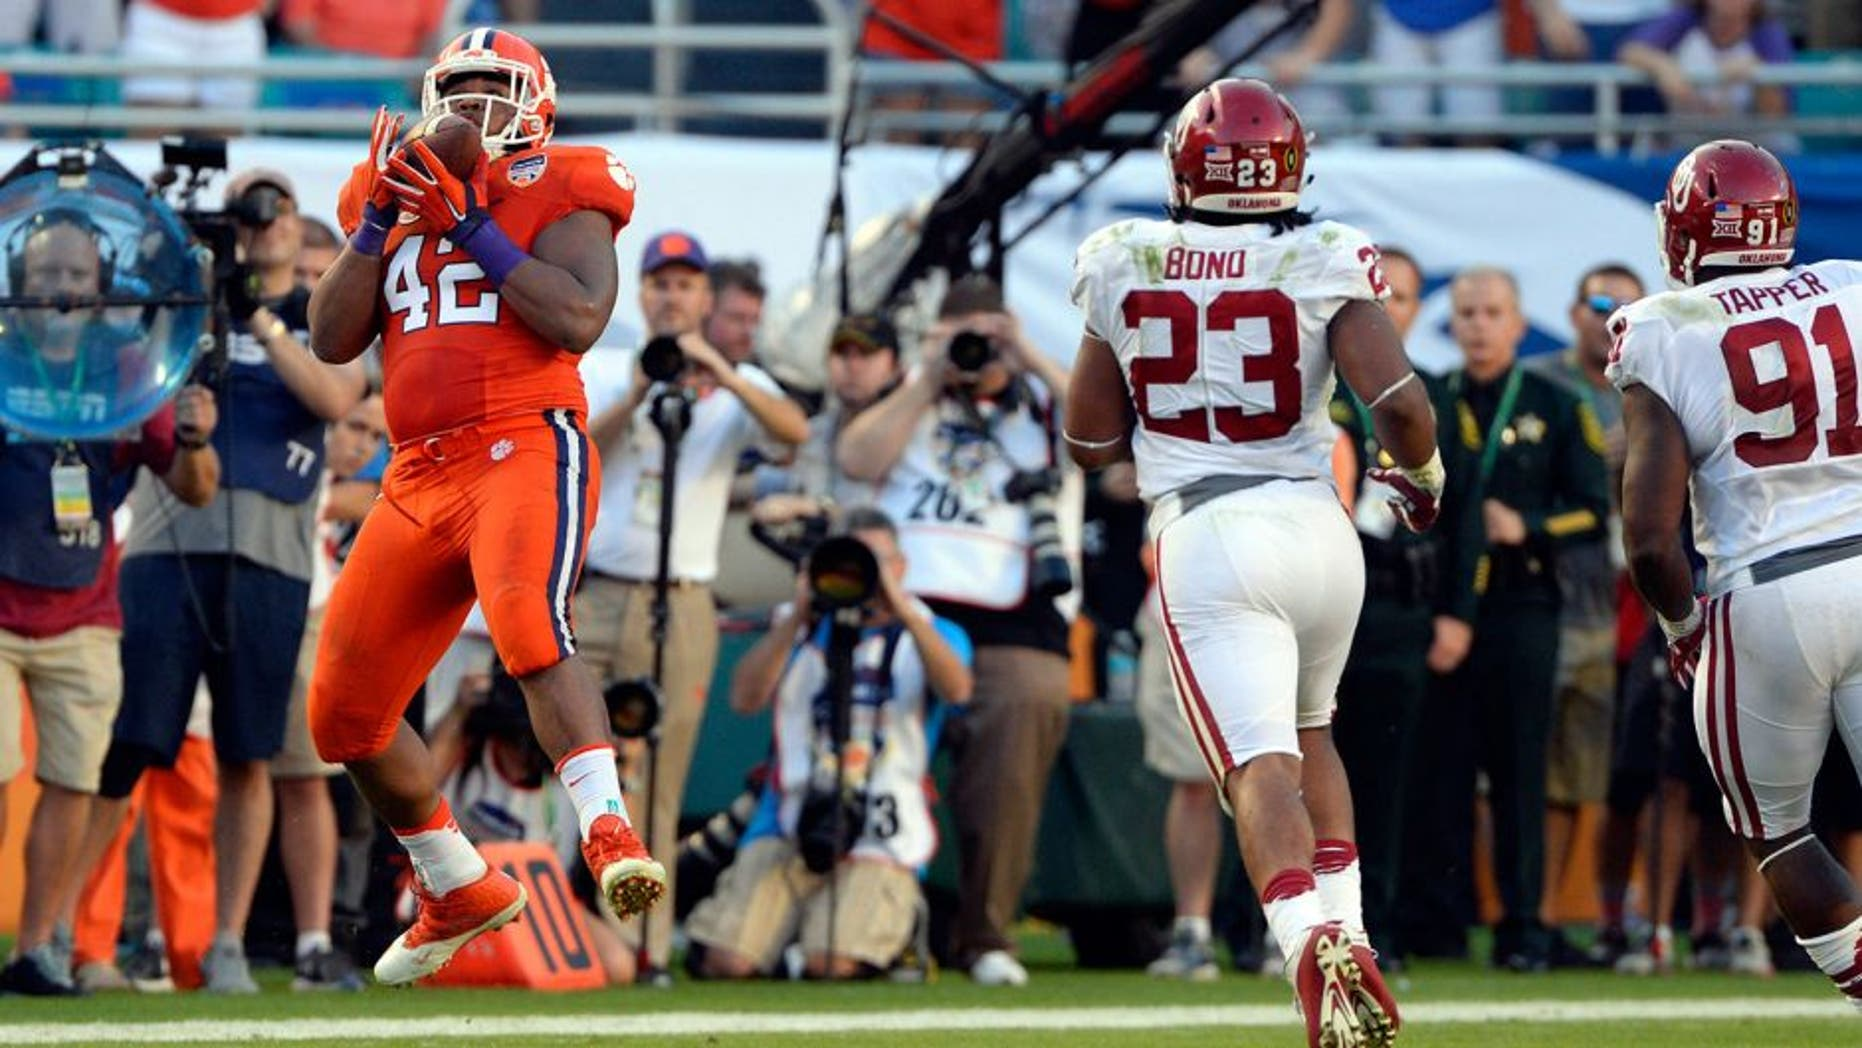 Dec 31, 2015; Miami Gardens, FL, USA; Clemson Tigers defensive lineman Christian Wilkins (42) catches a pass on a fake punt against the Oklahoma Sooners during the first half of the 2015 CFP semifinal at the Orange Bowl at Sun Life Stadium. Mandatory Credit: Tommy Gilligan-USA TODAY Sports